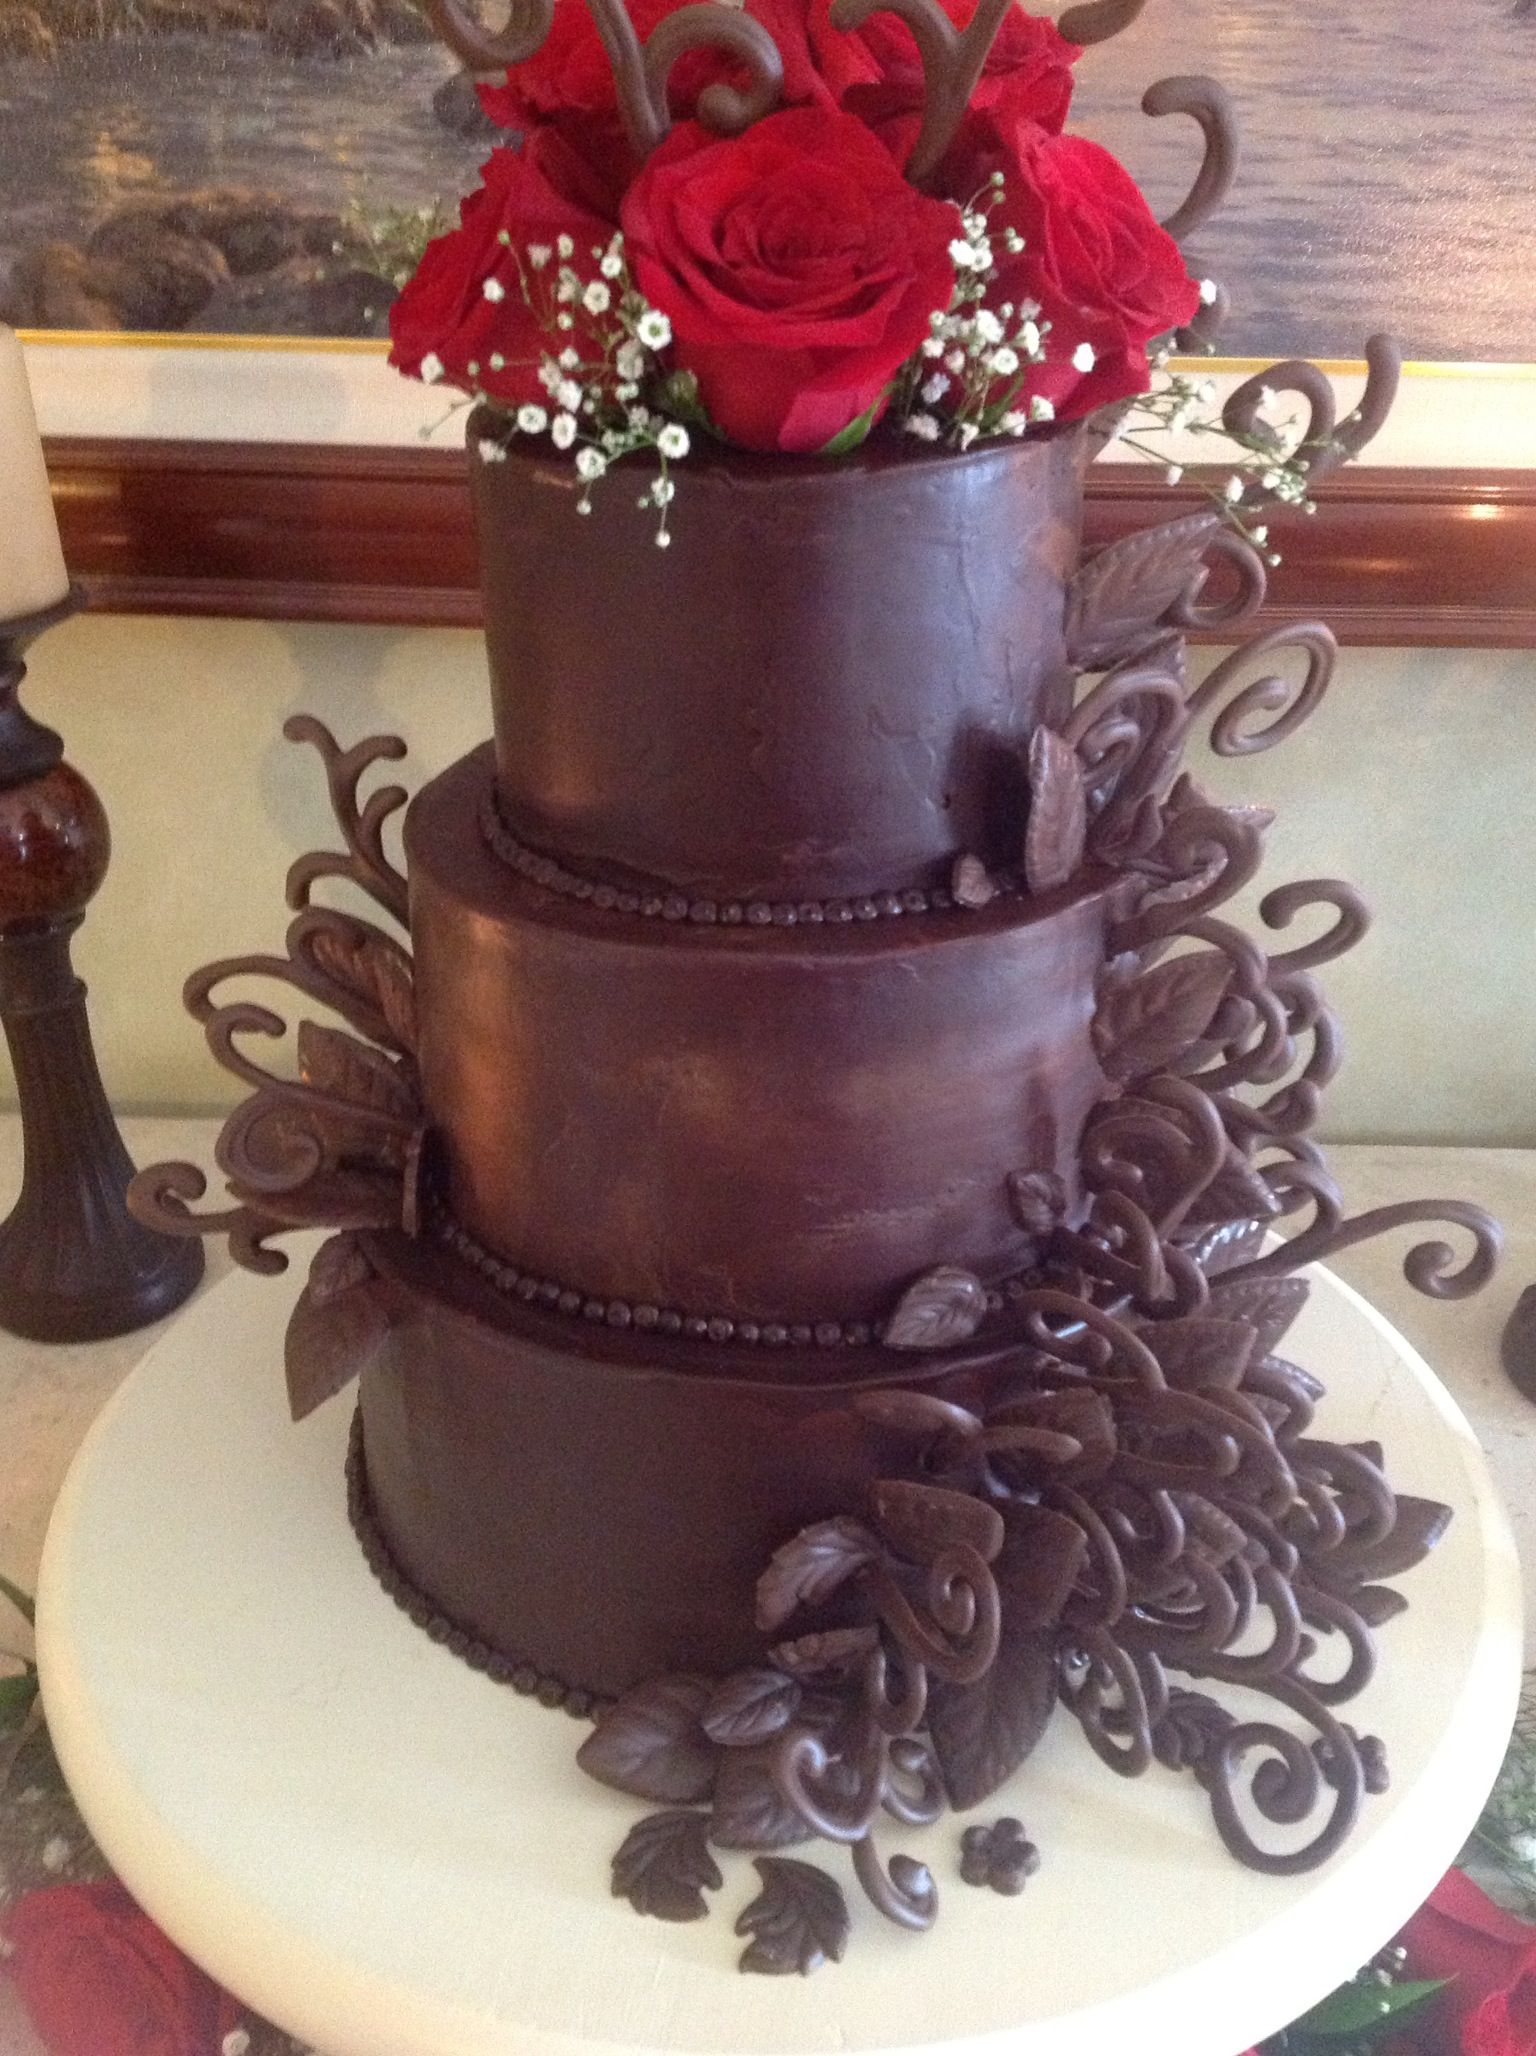 Chocolate ganache WOW Wedding cake creations